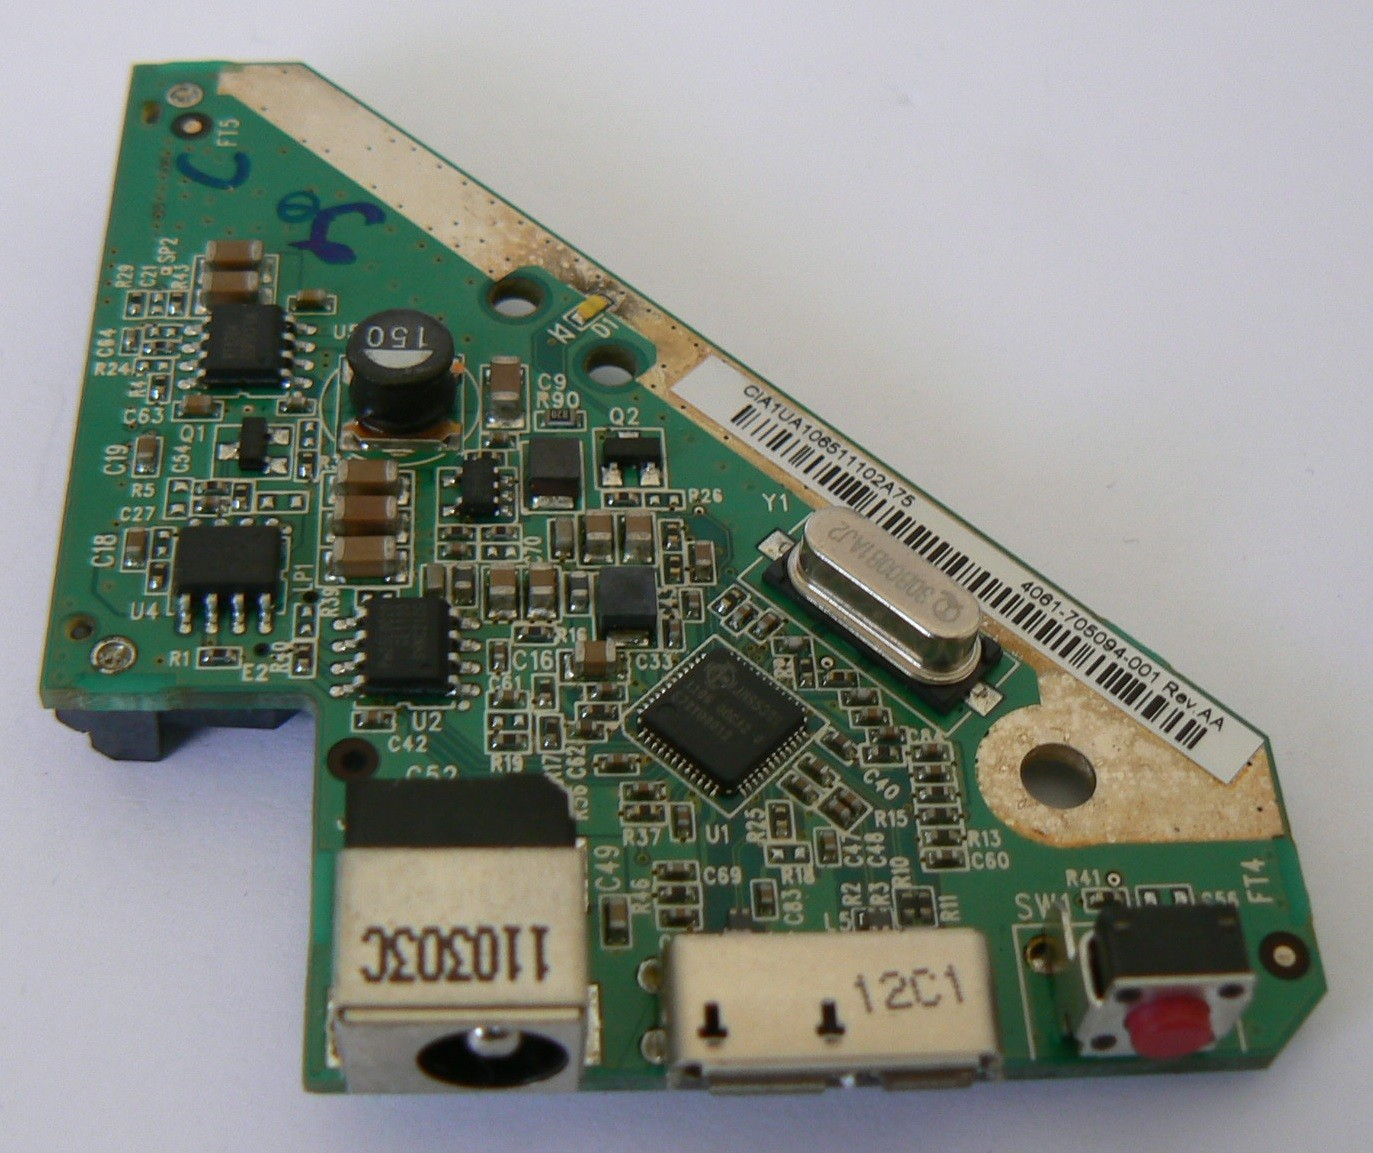 4061-705094-001 Rev AA WD Controller Board My Book Essential 1TB/2TB/3TB USB 3.0